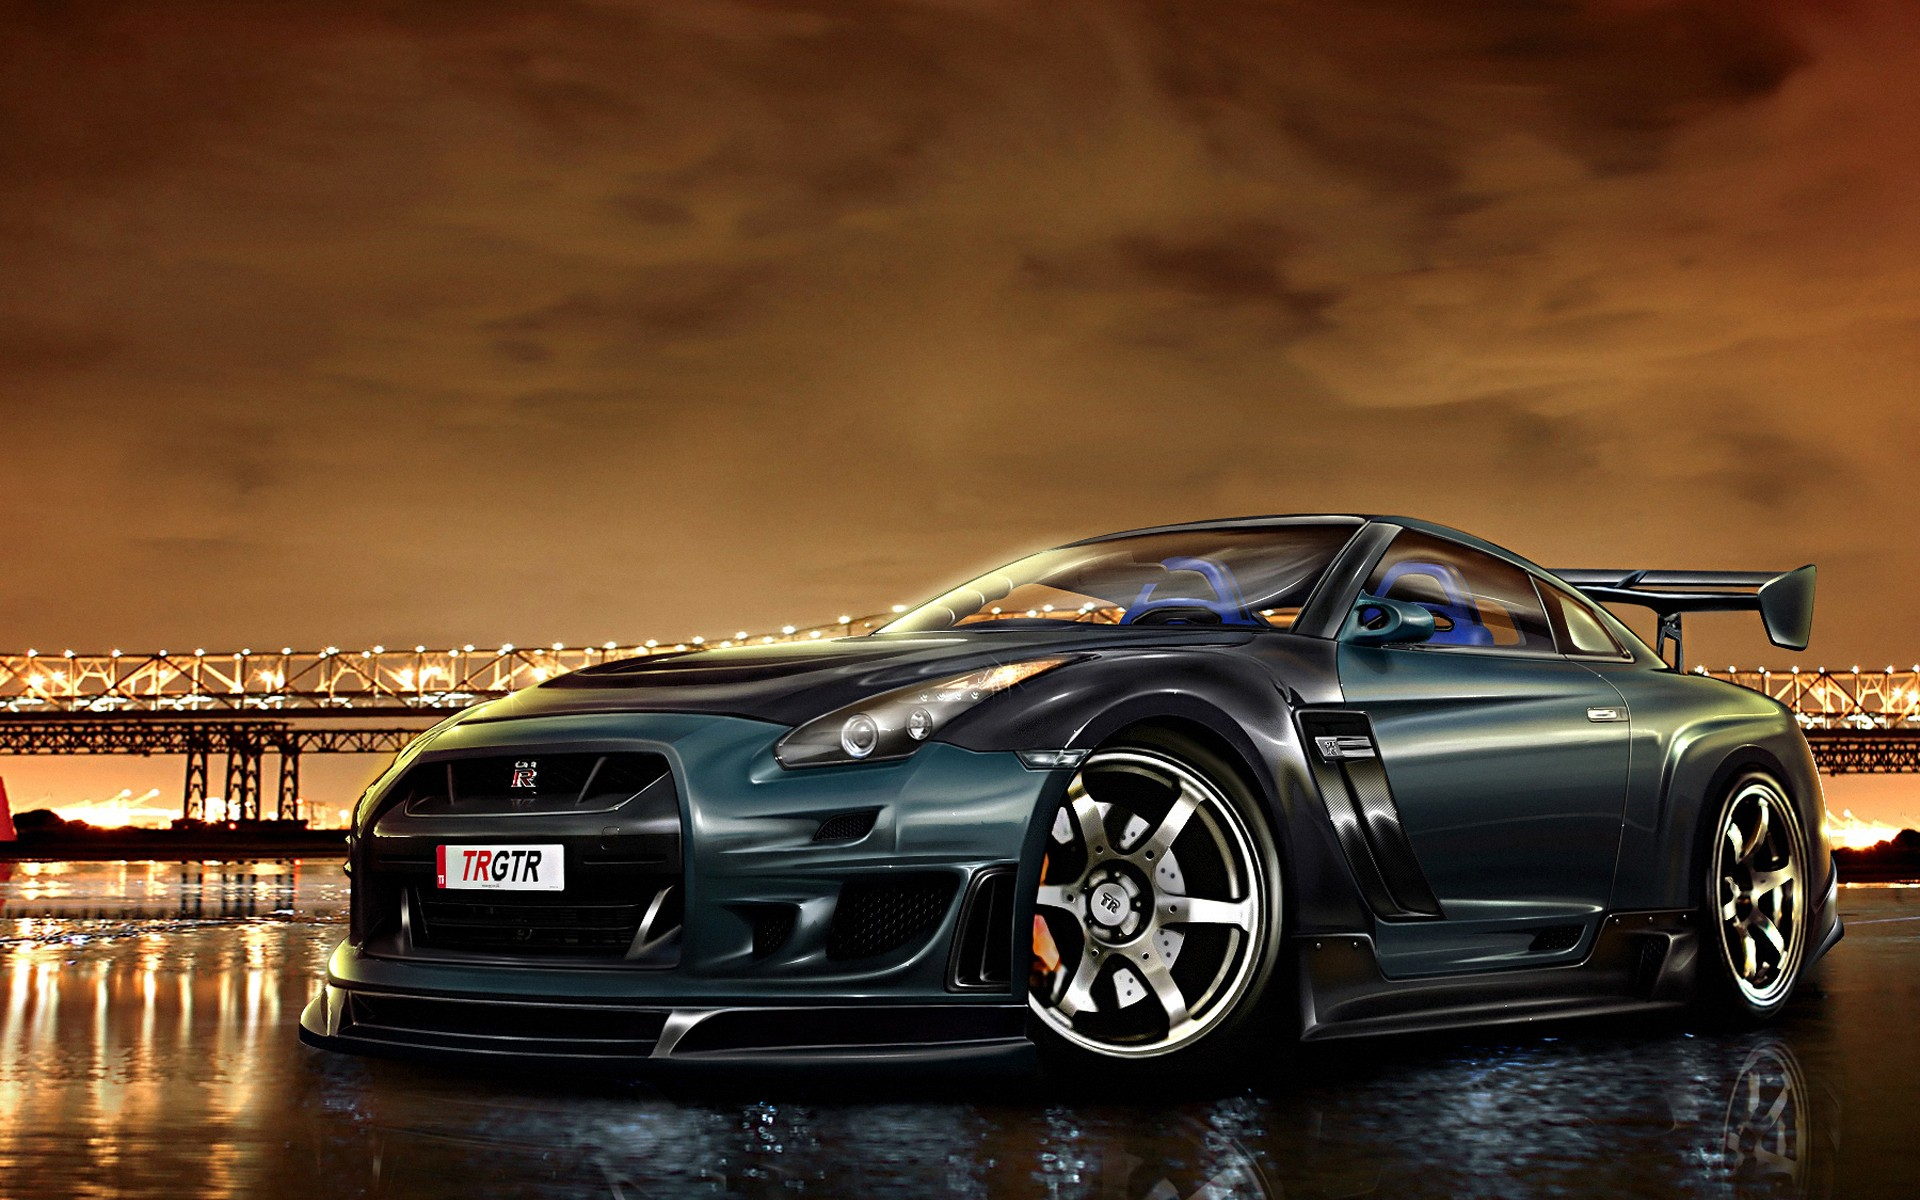 Super Cars Wallpapers vehicles that stun the people   MuscleDrive 1920x1200